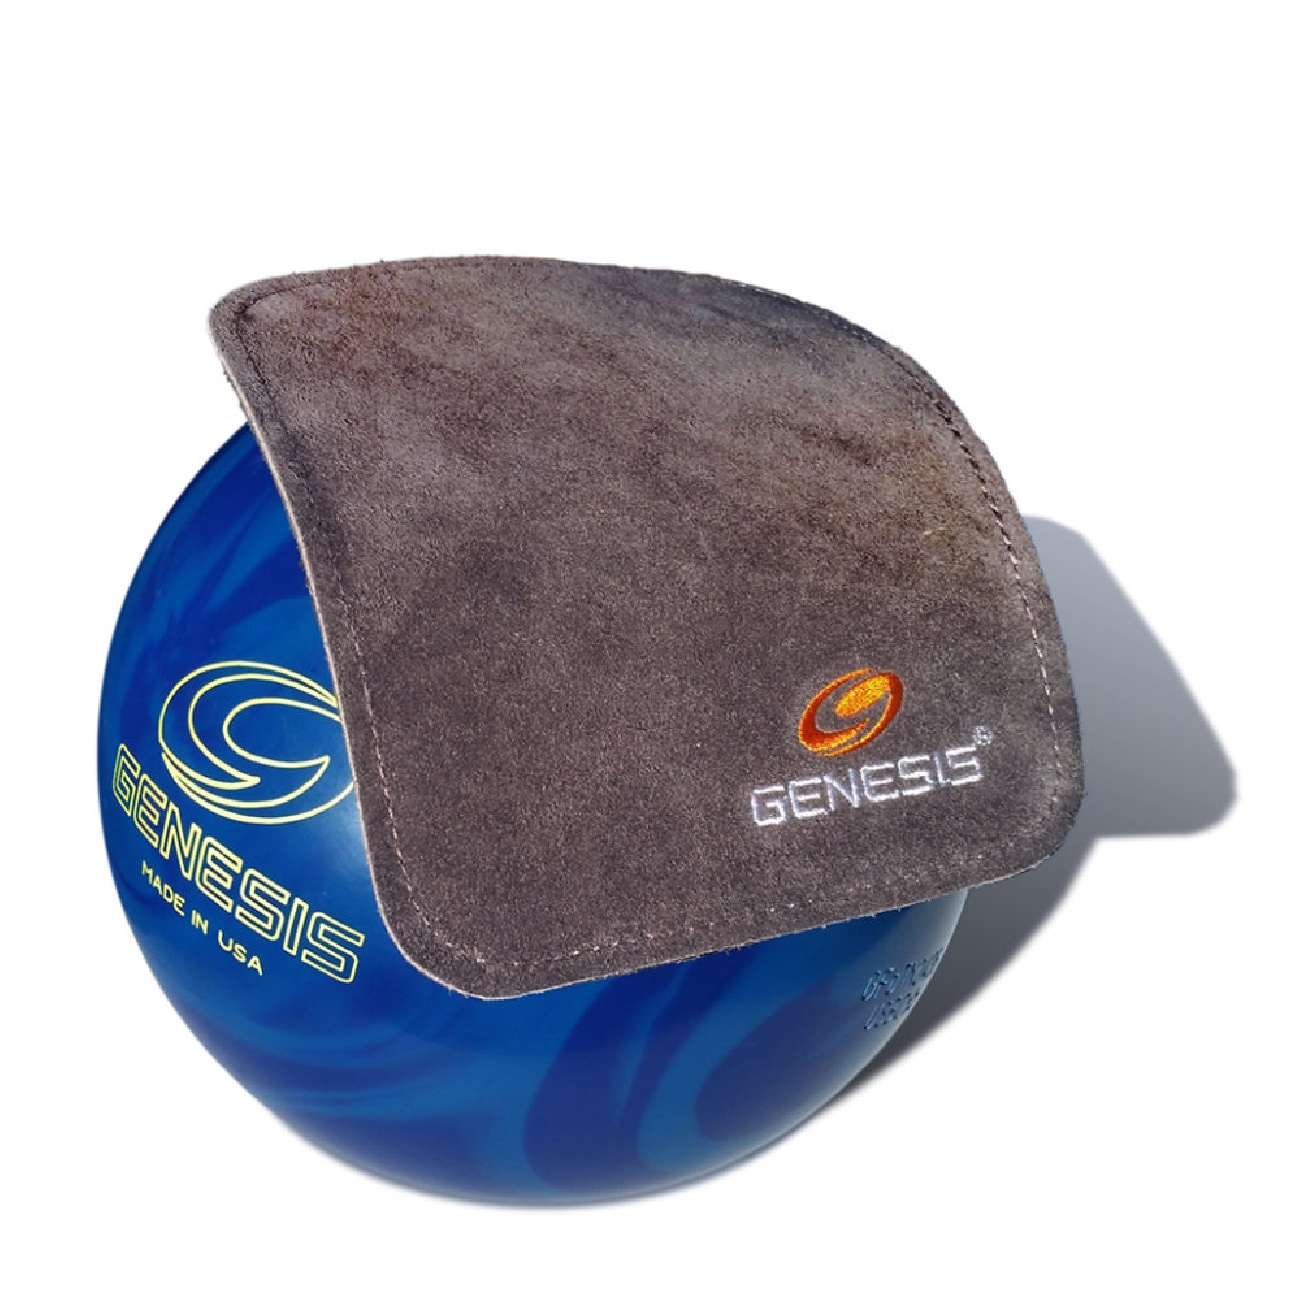 Genesis Pure Pad Bowling Ball Wipe - Black